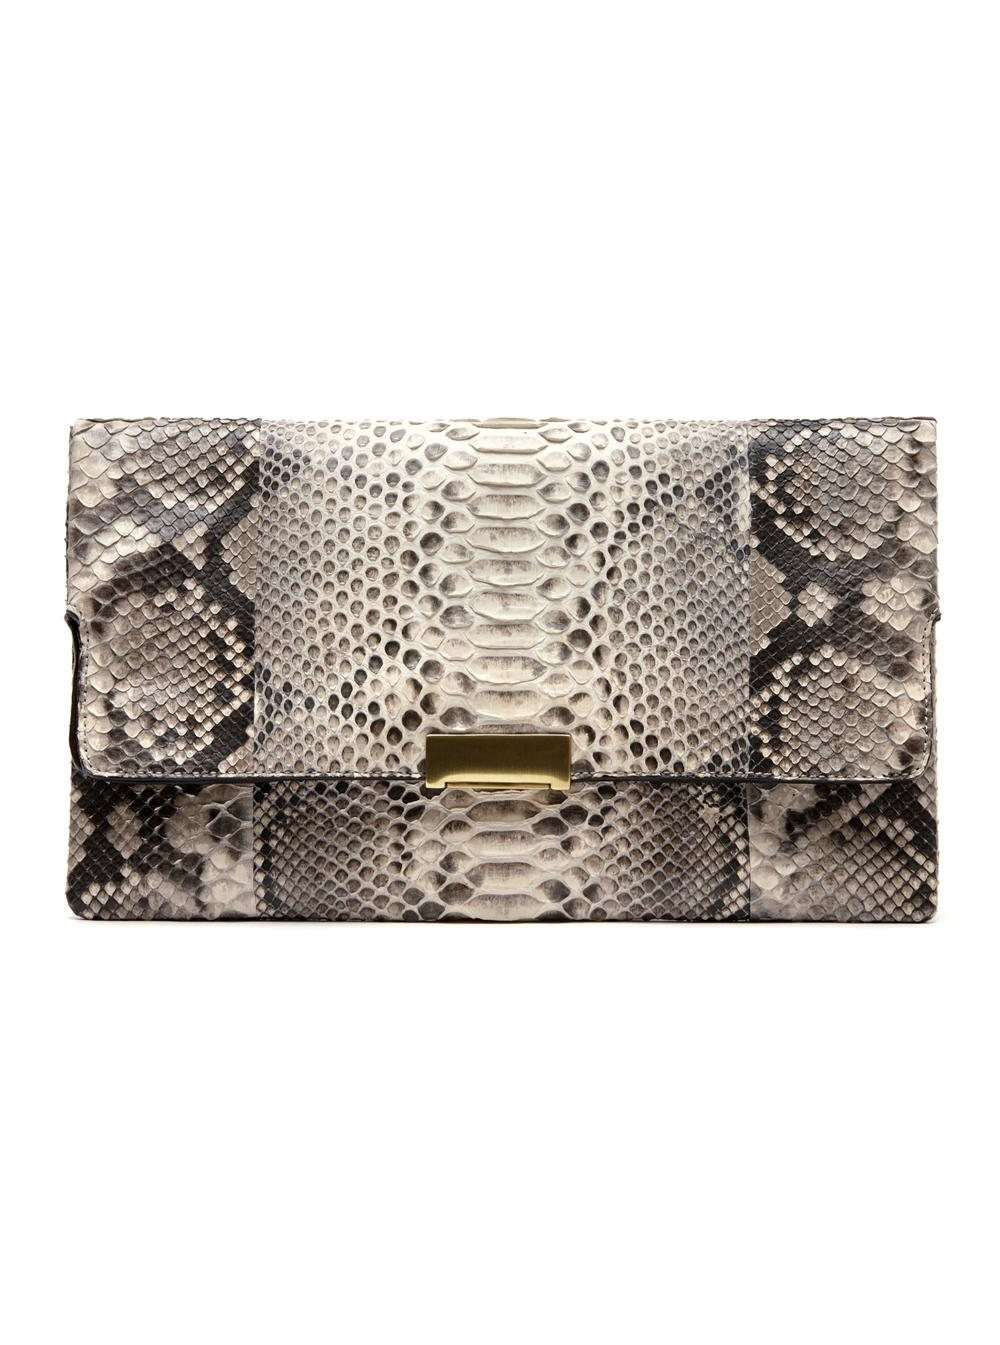 gerard darel. Clutch